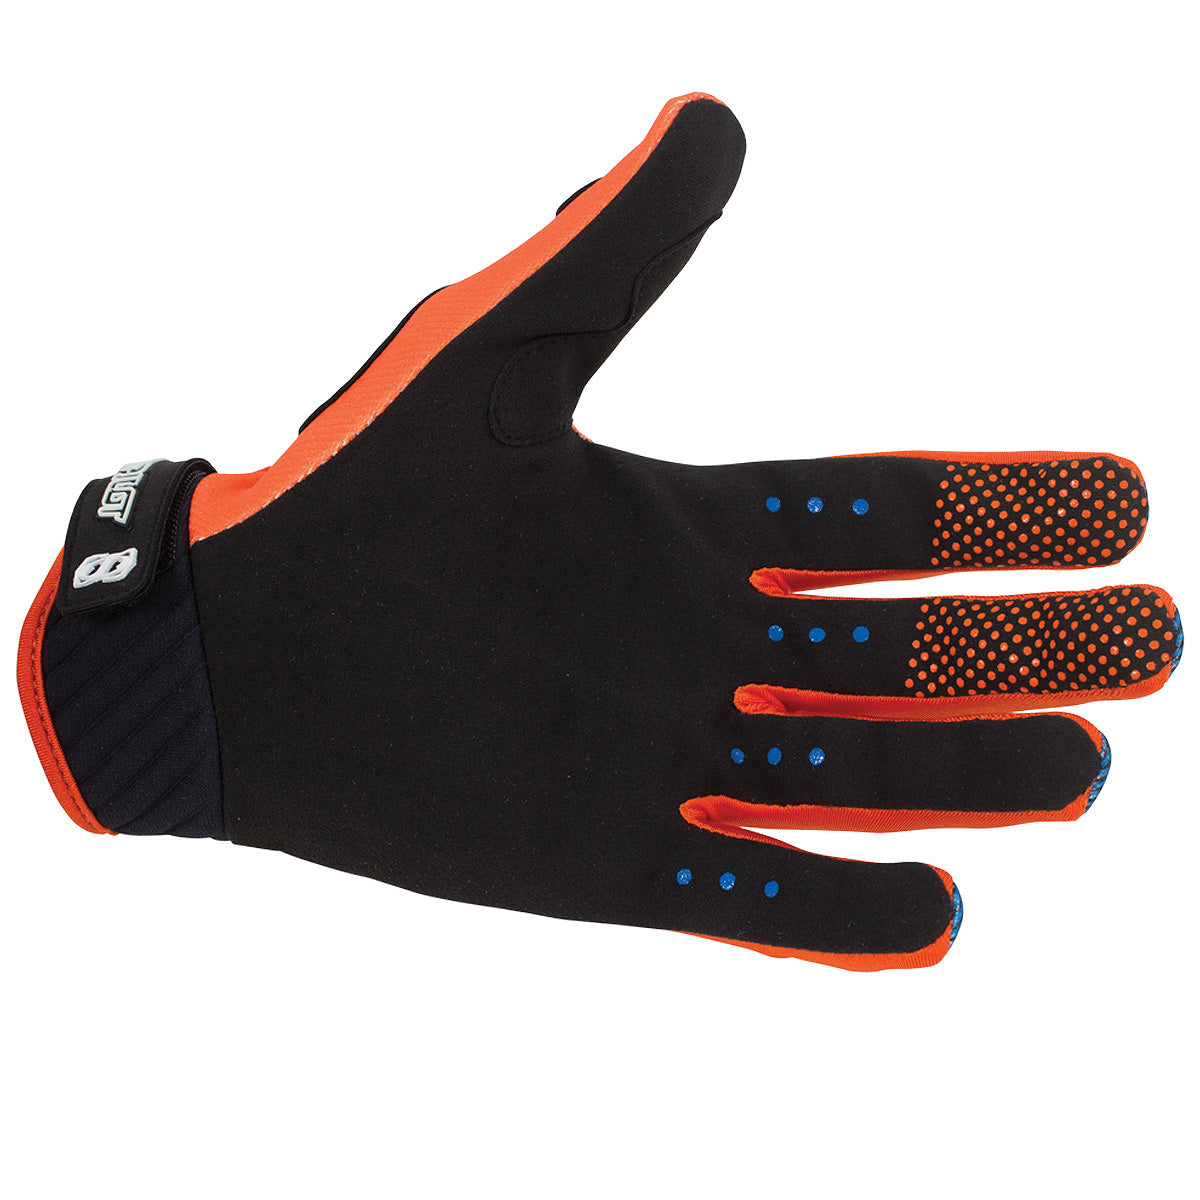 JETPILOT PHANTOM SUPER LITE GLOVE NAVY/ORANGE